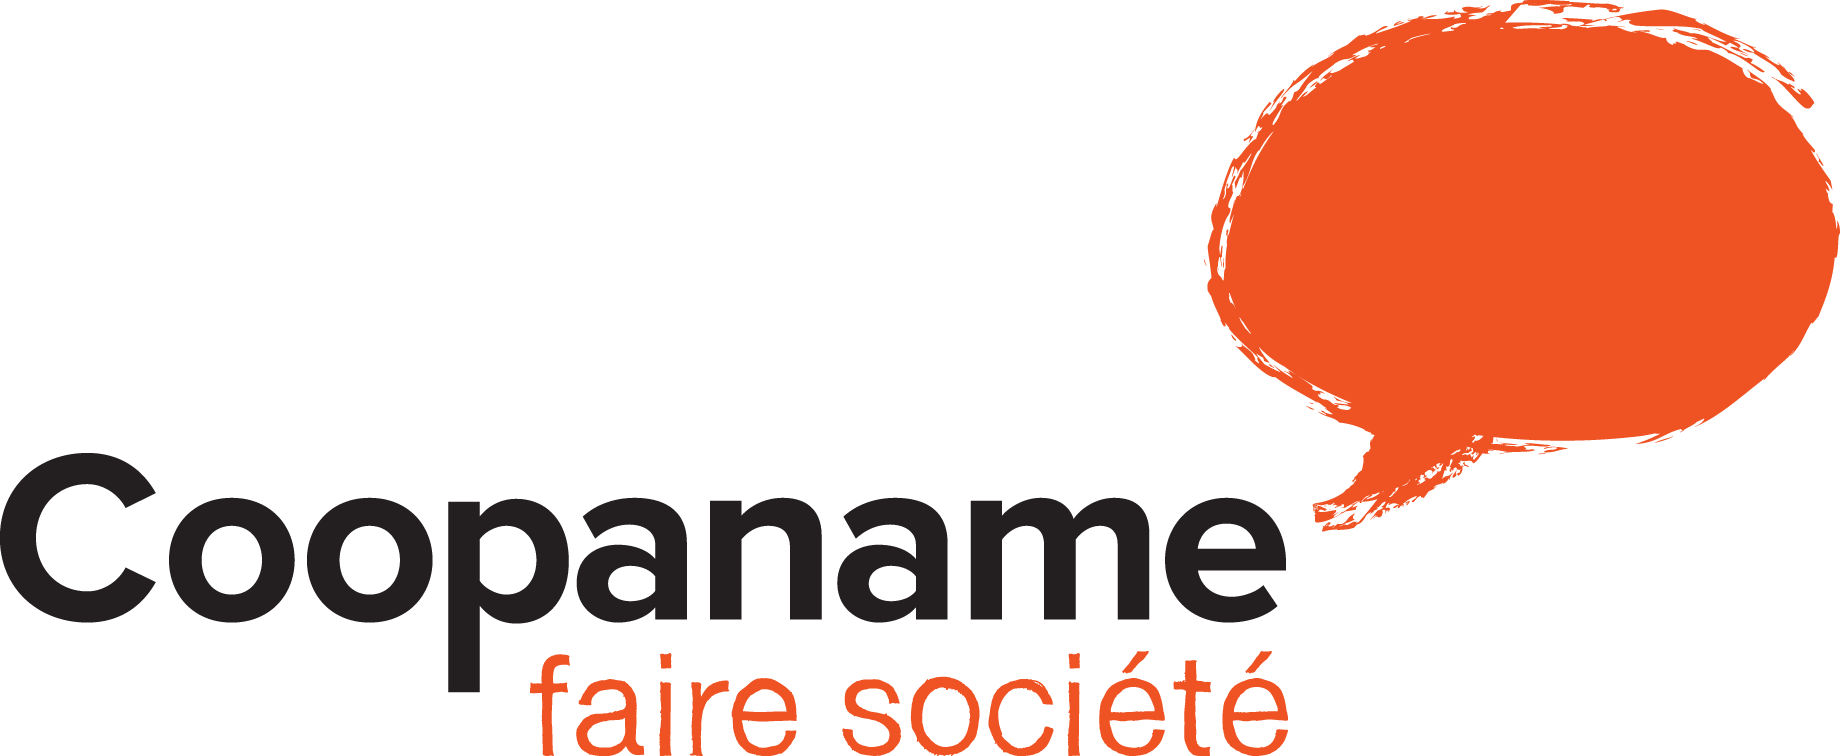 20190000_Logo_Coopaname_Couleur.png